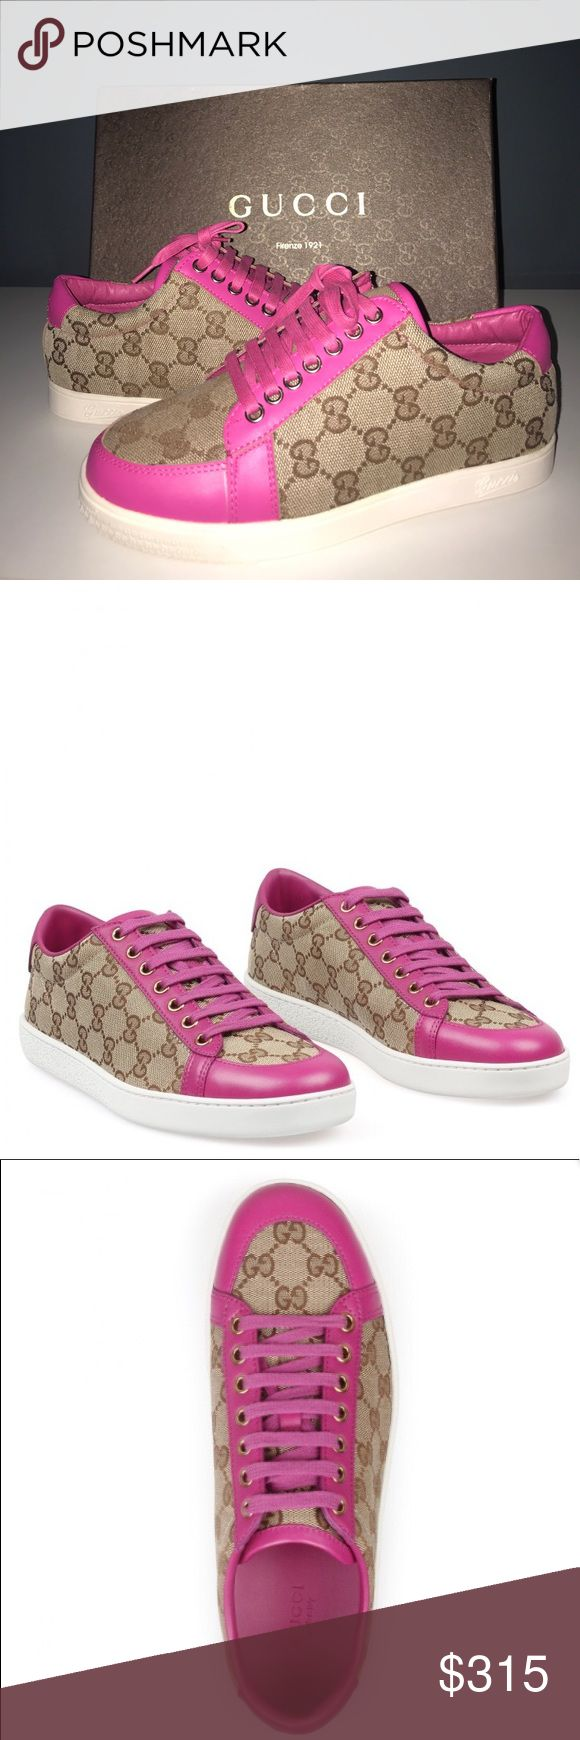 Gucci Pink and Beige Shoes (never worn) Original GG Canvas Brooklyn Lace up!! Size 6. Original Price was $475, price negotiable Gucci Shoes Sneakers